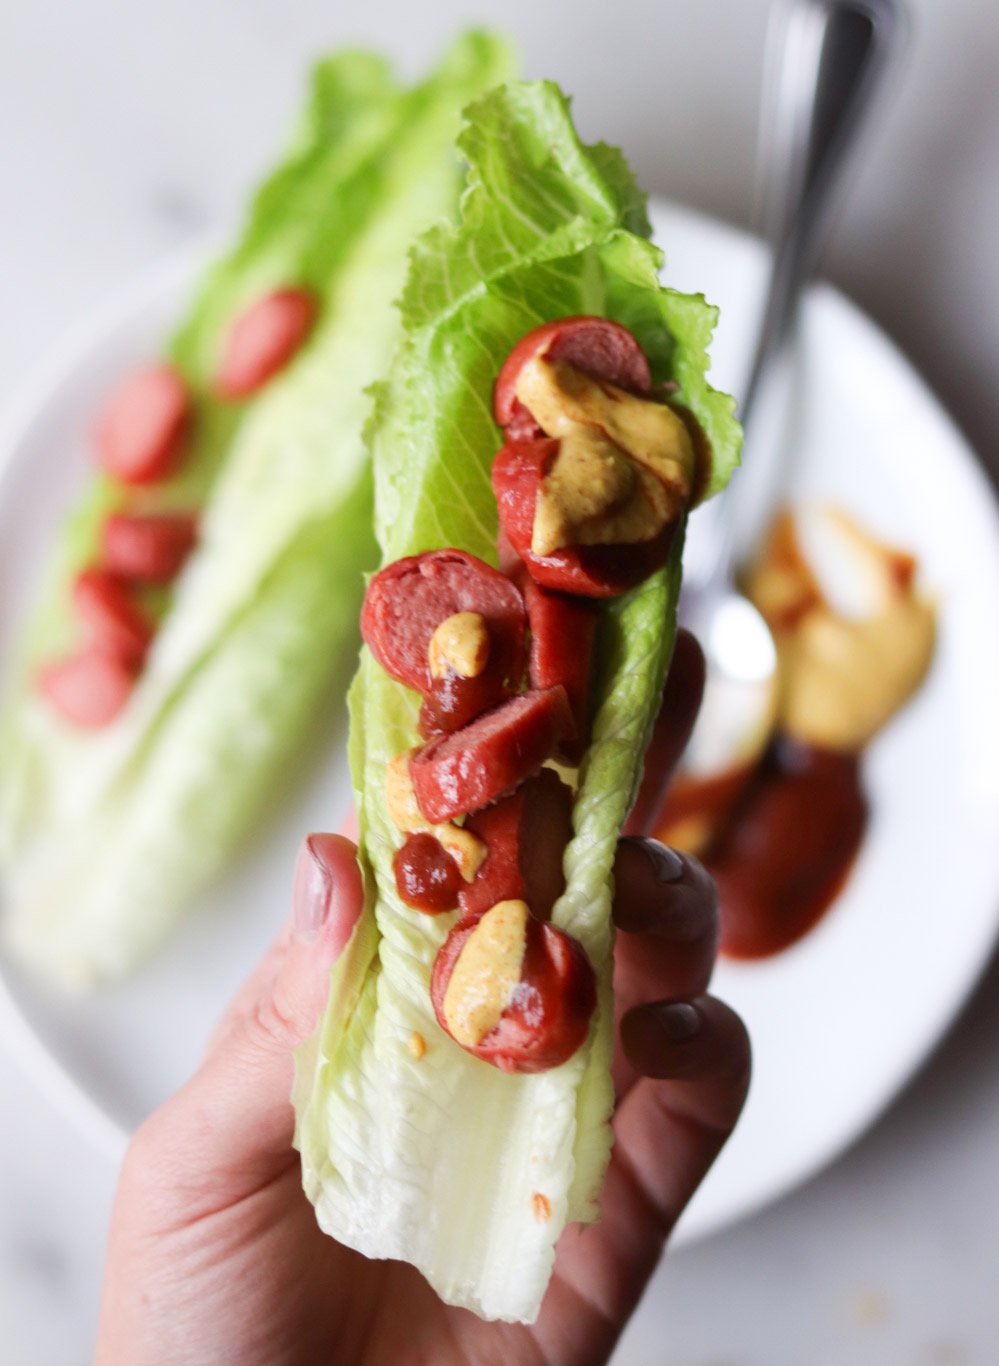 A hand holds a mini meal of small romaine lettuce wrap filled with half of a sliced Whole30 hot dog, ketchup, and mustard.